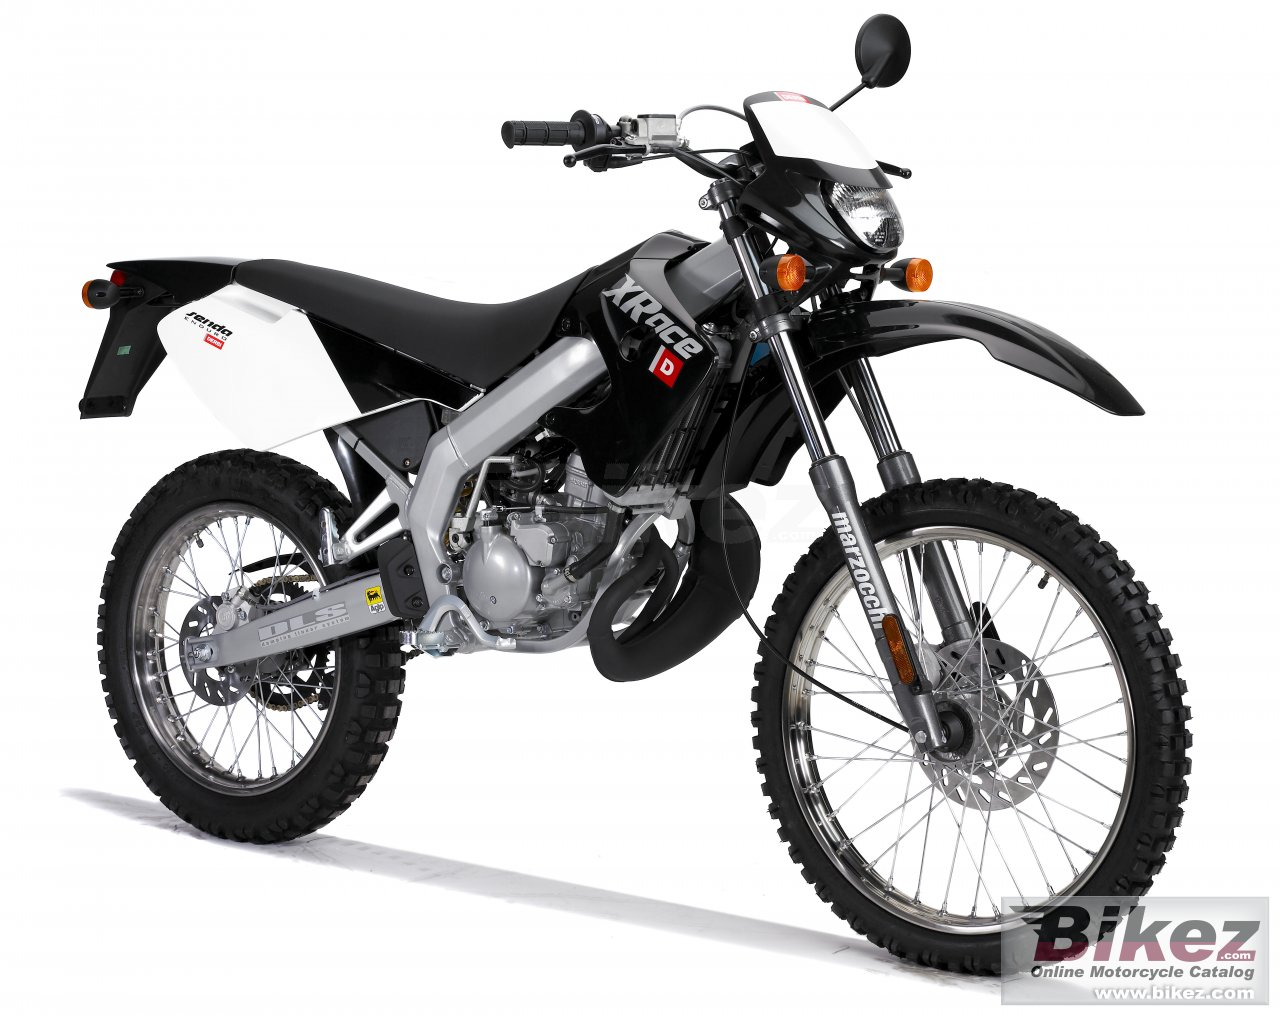 Big Derbi senda xrace 50 r picture and wallpaper from Bikez.com